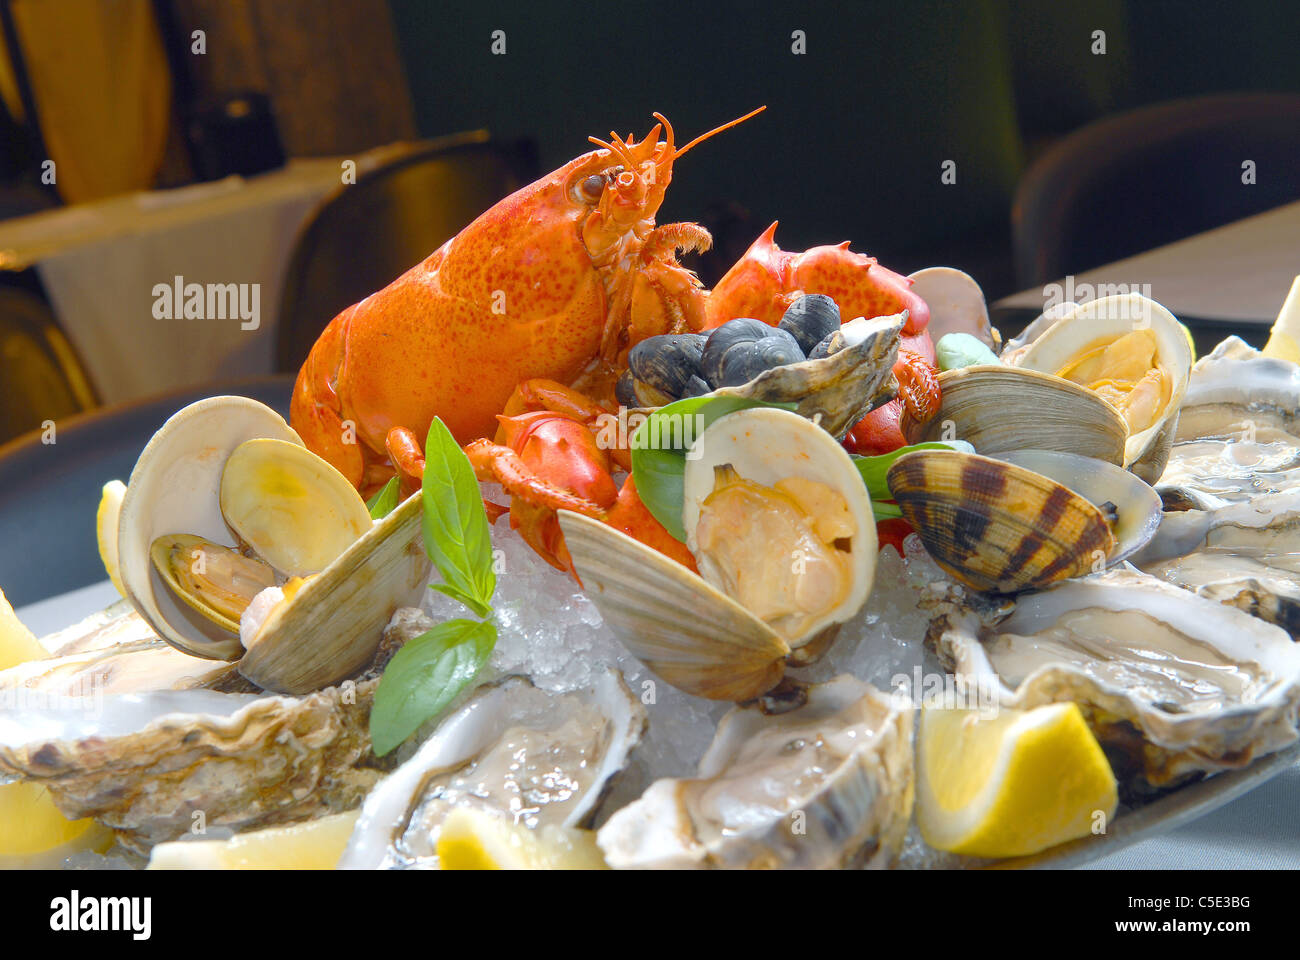 'A cocktail from seafood' with lobster and oysters - Stock Image